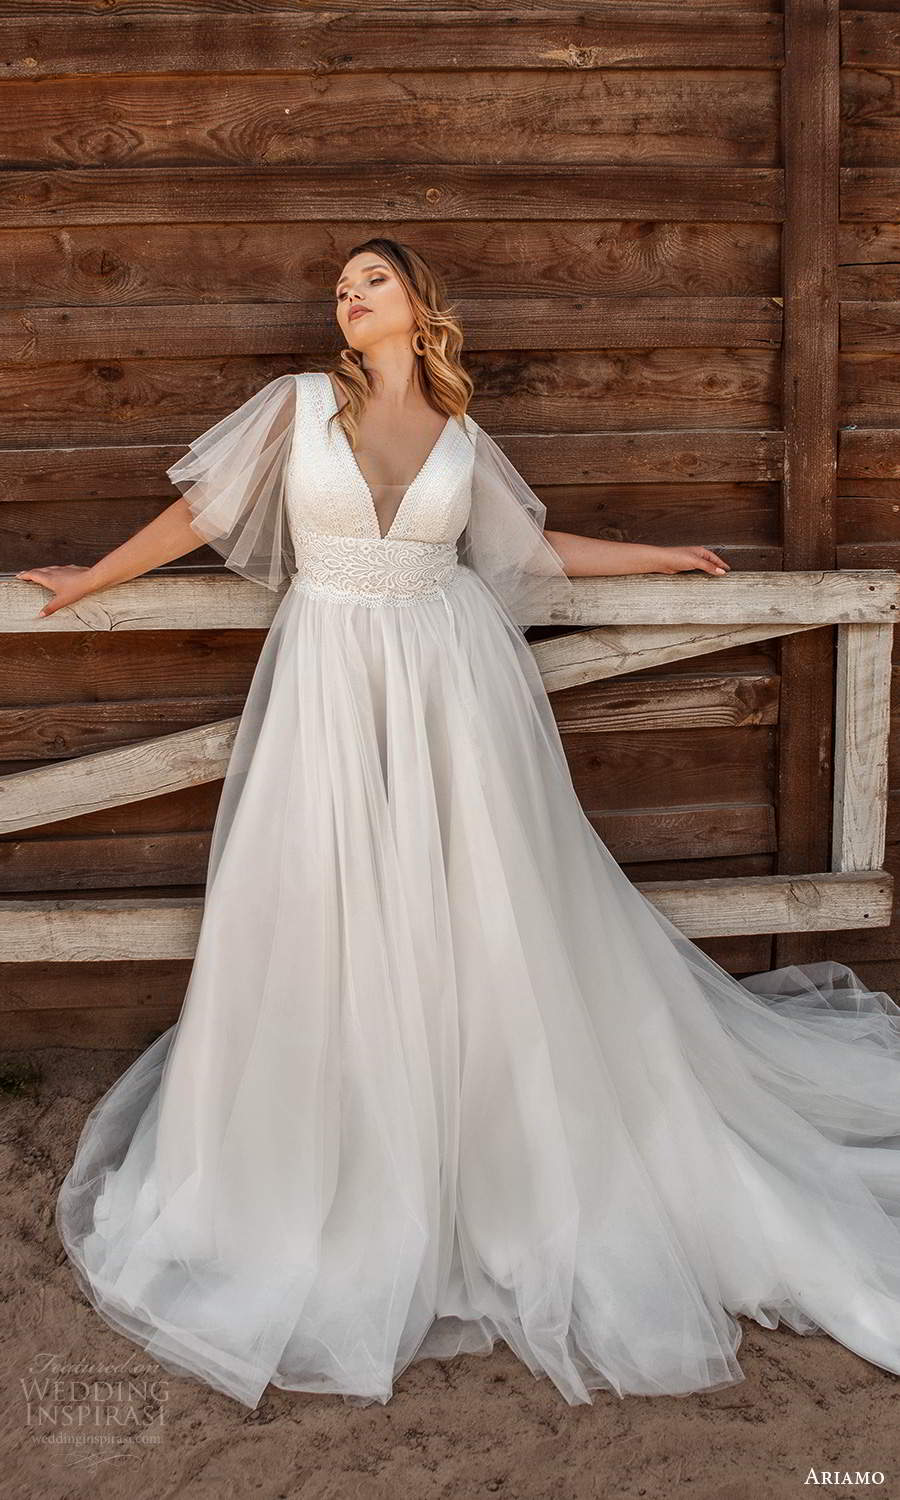 ariamo 2021 plus bridal sheer flutter sleeves v neckline embellished bodice a line ball gown wedding dress chapel train (14) mv